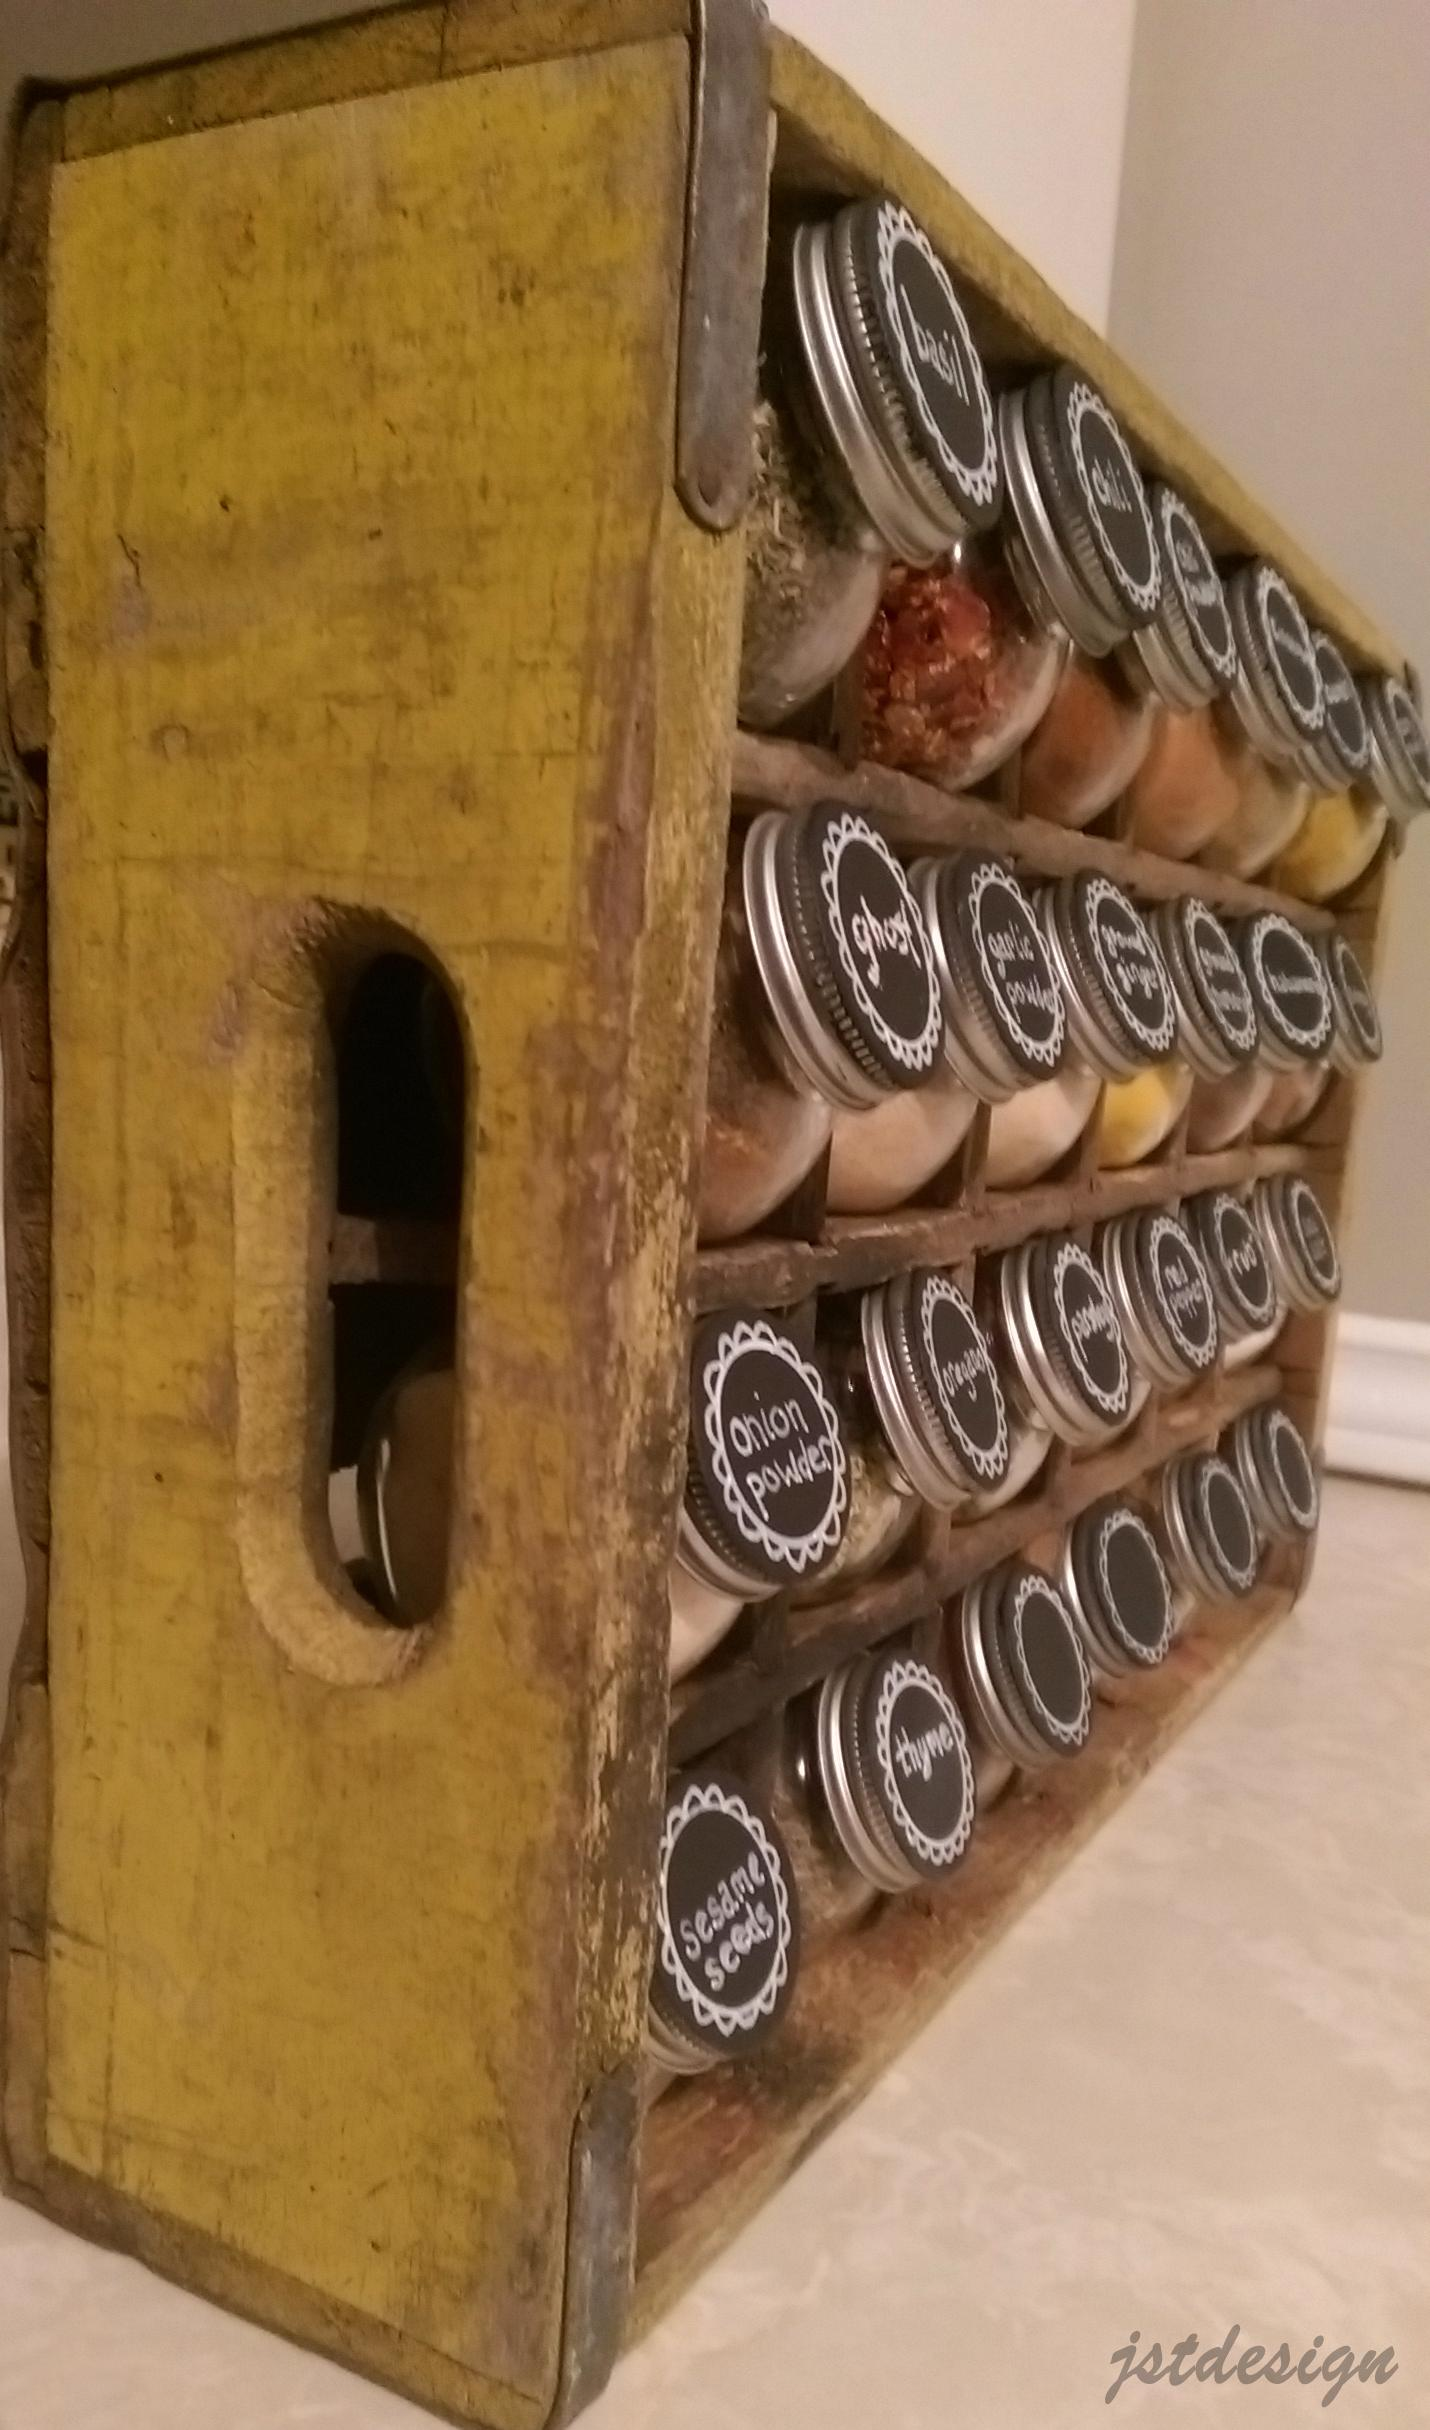 Distressed Wooden Crate Turned Spice Rack